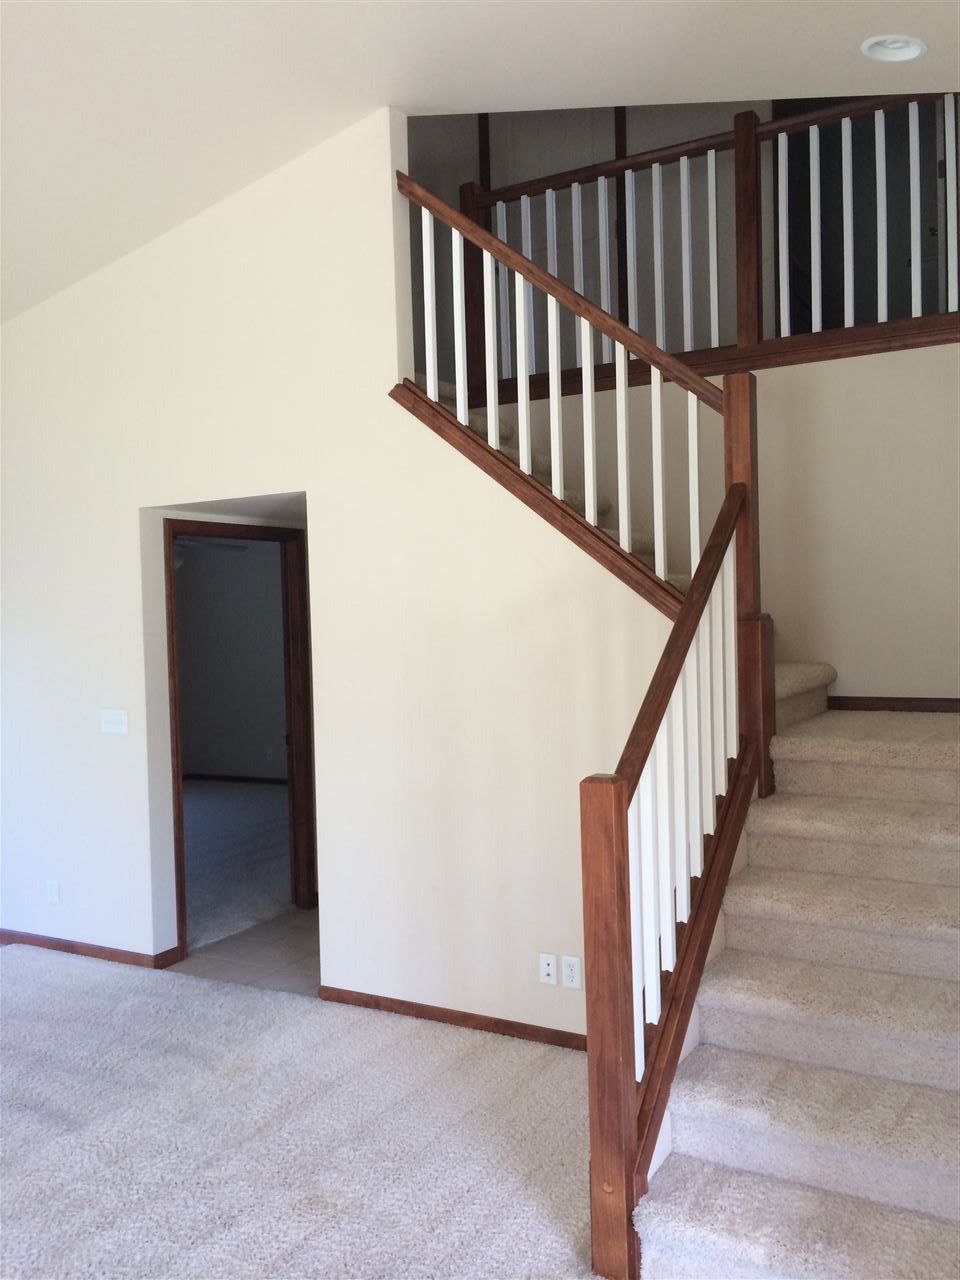 WESTSIDE DUPLEX WELL BUILT WITH GREAT RENTAL HISTORY